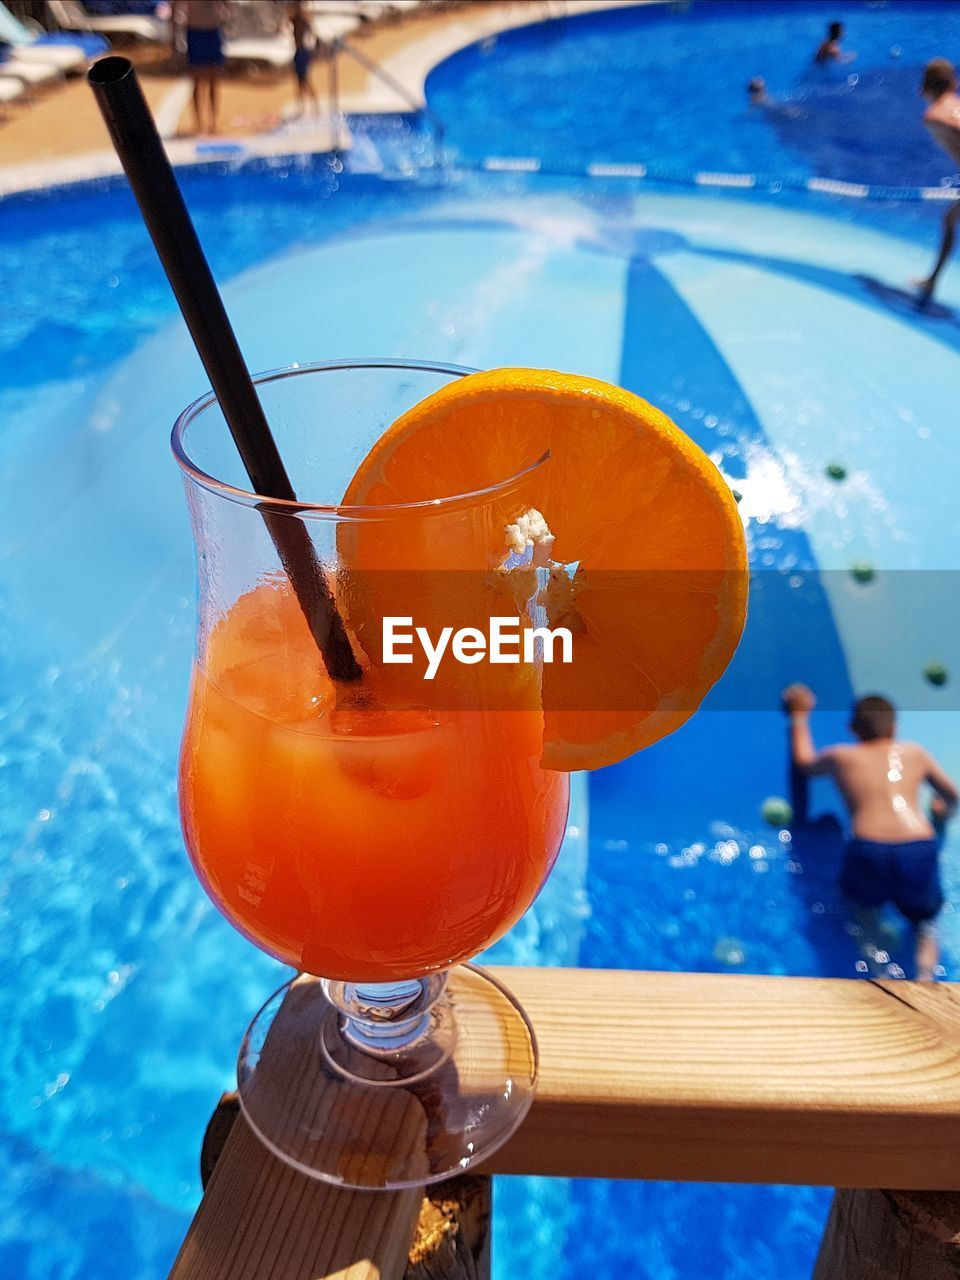 drink, food and drink, glass, refreshment, straw, drinking glass, cocktail, food, drinking straw, alcohol, household equipment, focus on foreground, fruit, healthy eating, freshness, close-up, orange color, table, day, outdoors, swimming pool, orange, tropical drink